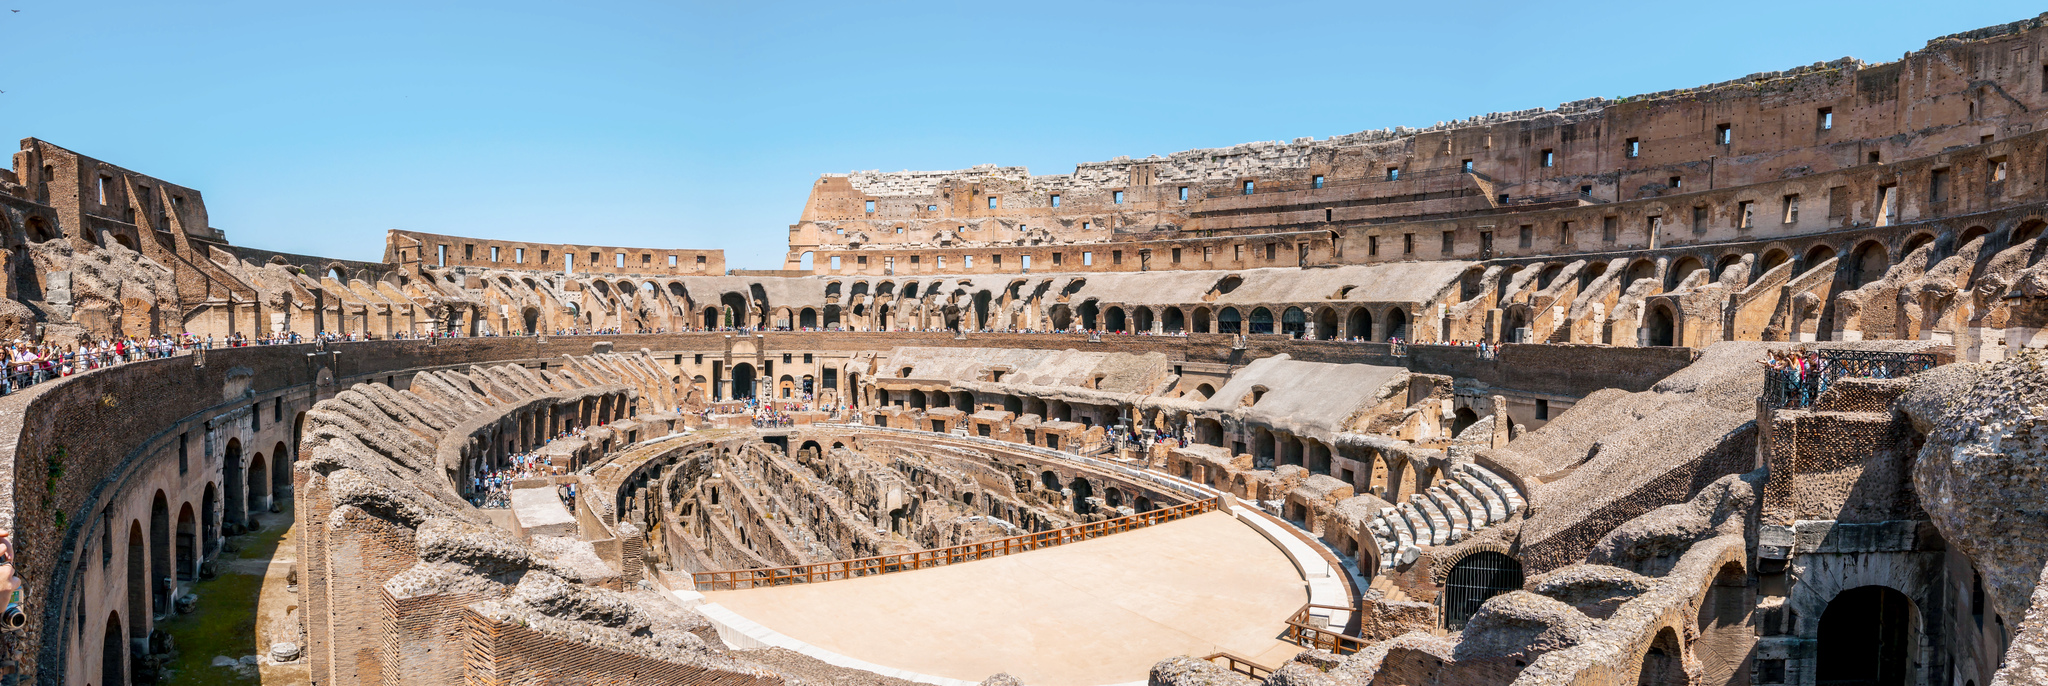 Colosseum, Architecture Inside-Out, Kayleigh Jankowski